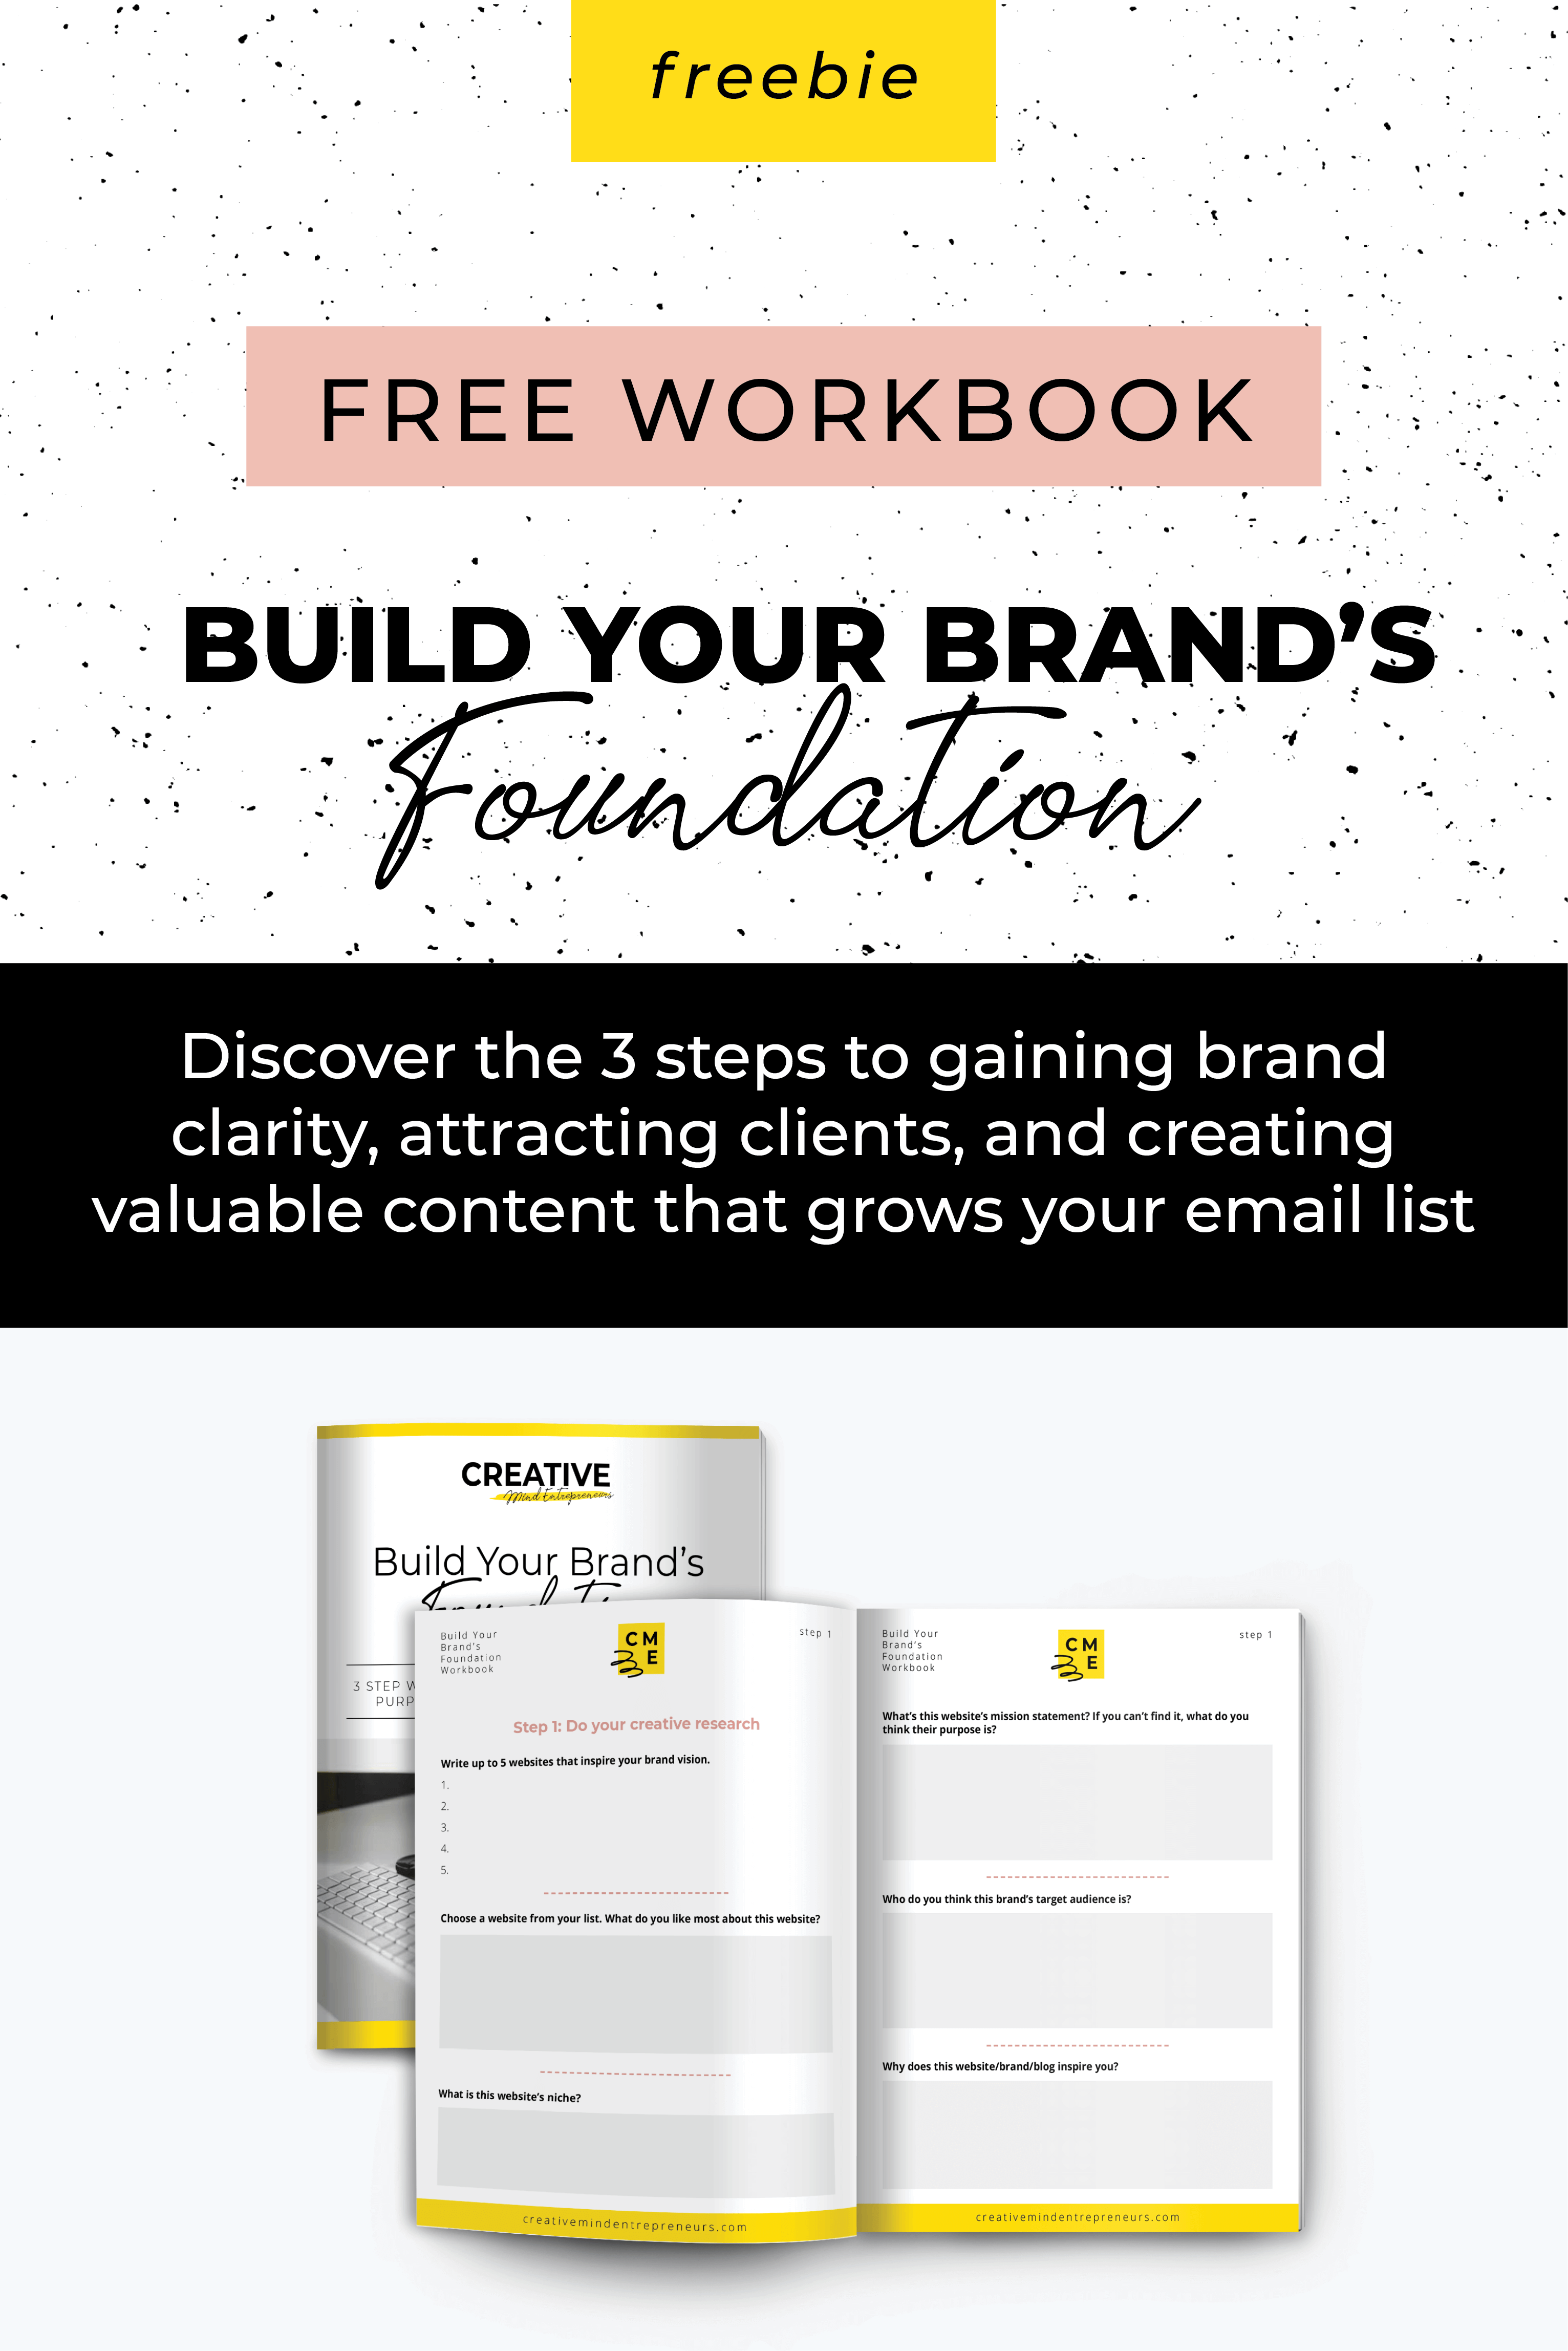 Free Templates, Workbooks, and Courses for Creative